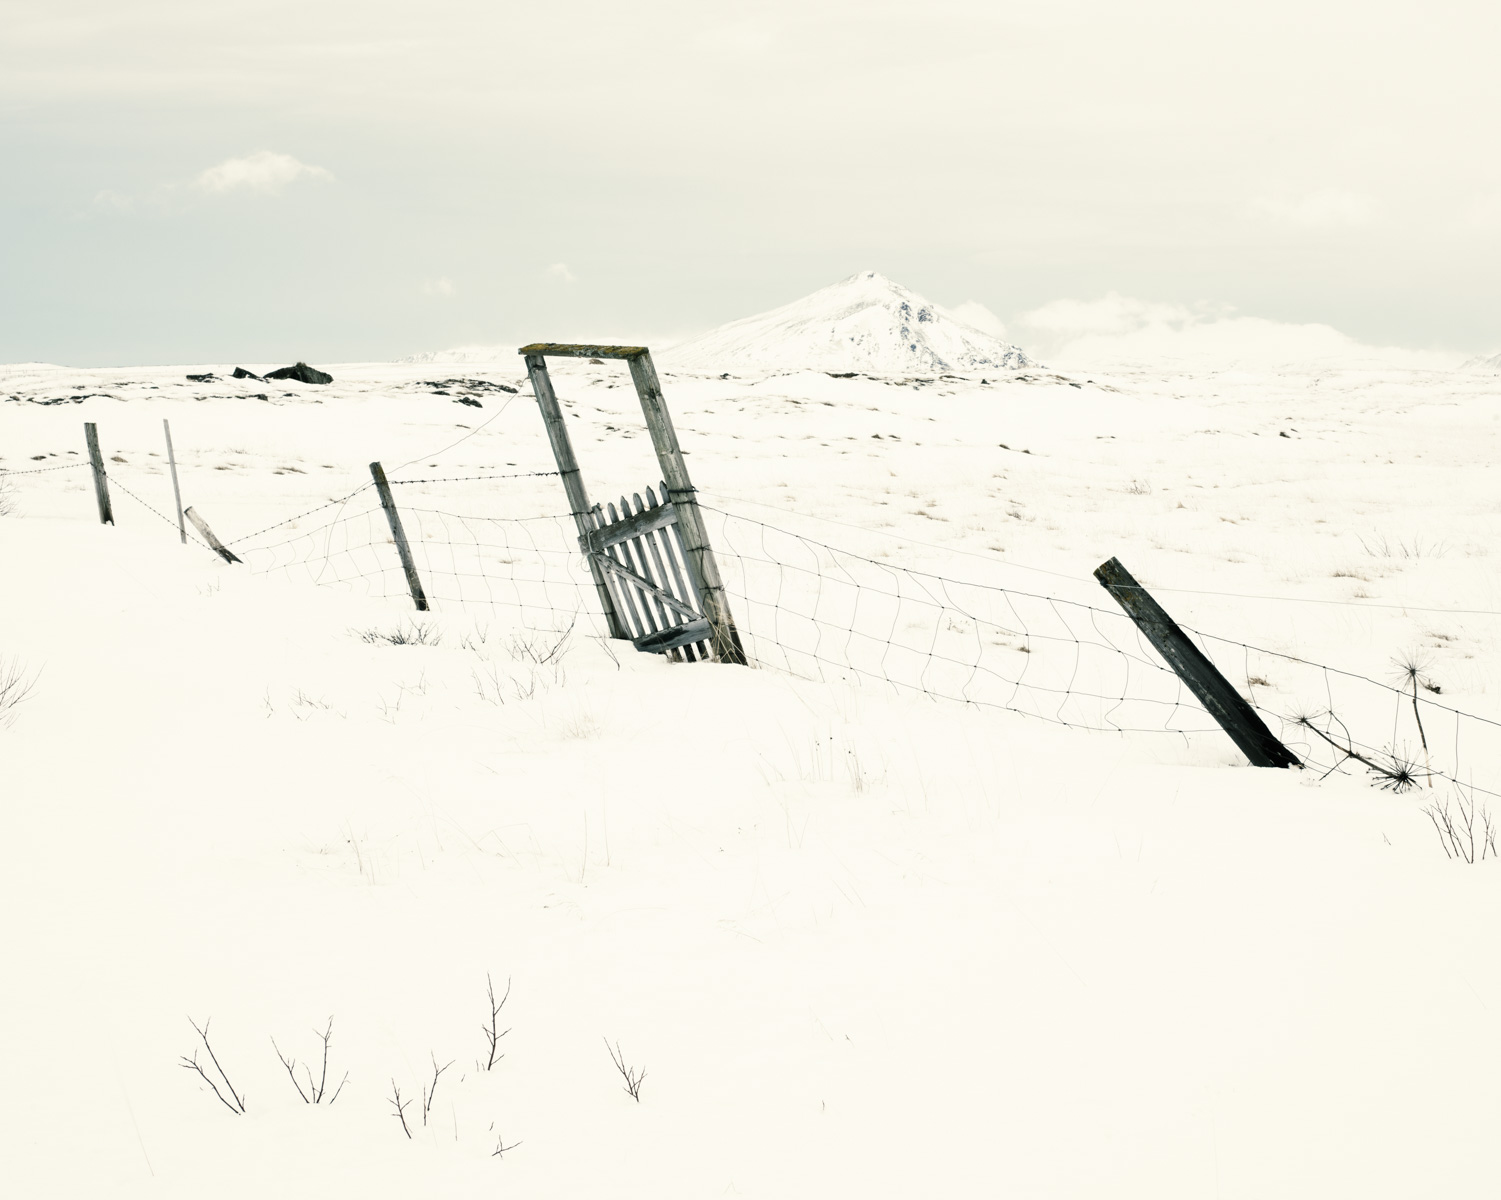 Tumbledown fencing near Laxa River, North Iceland